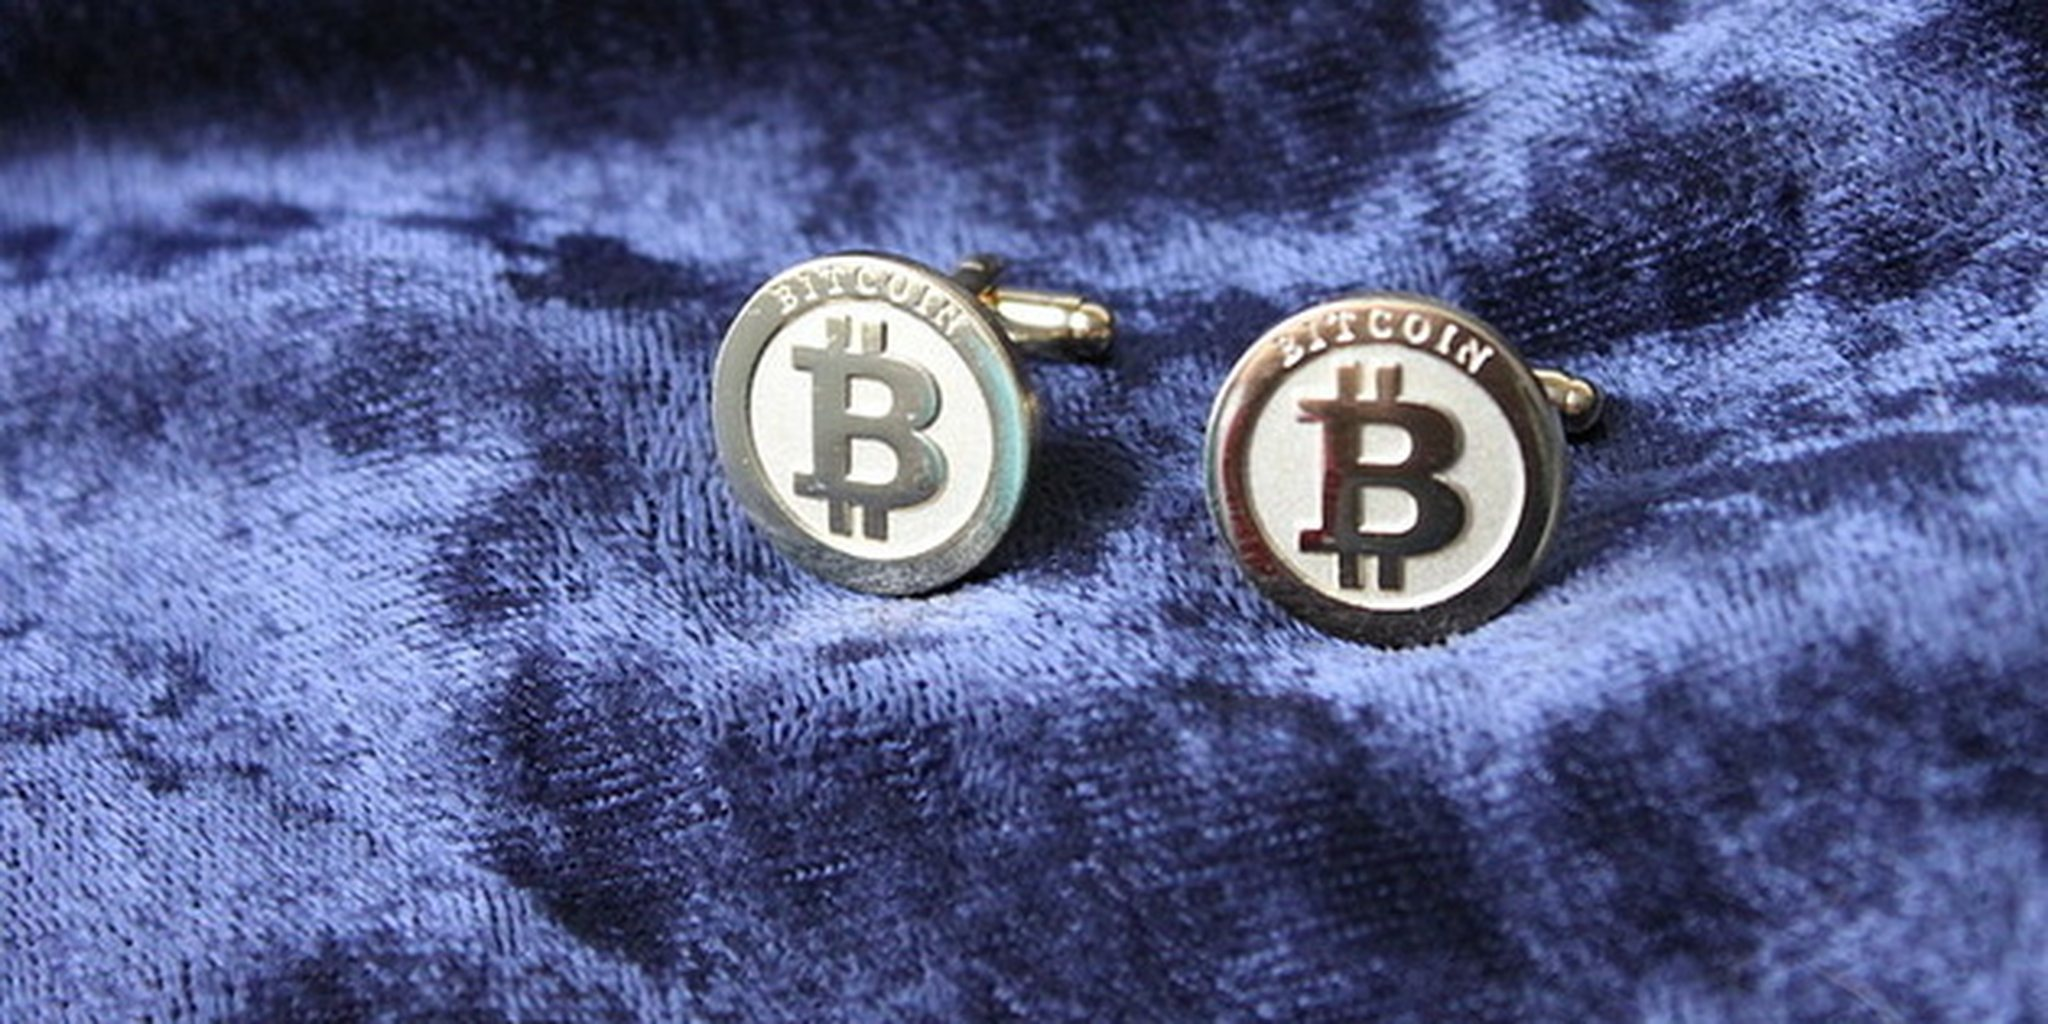 Bitcoin Isn't the Criminal Safe Haven People Think It Is | Motherboard